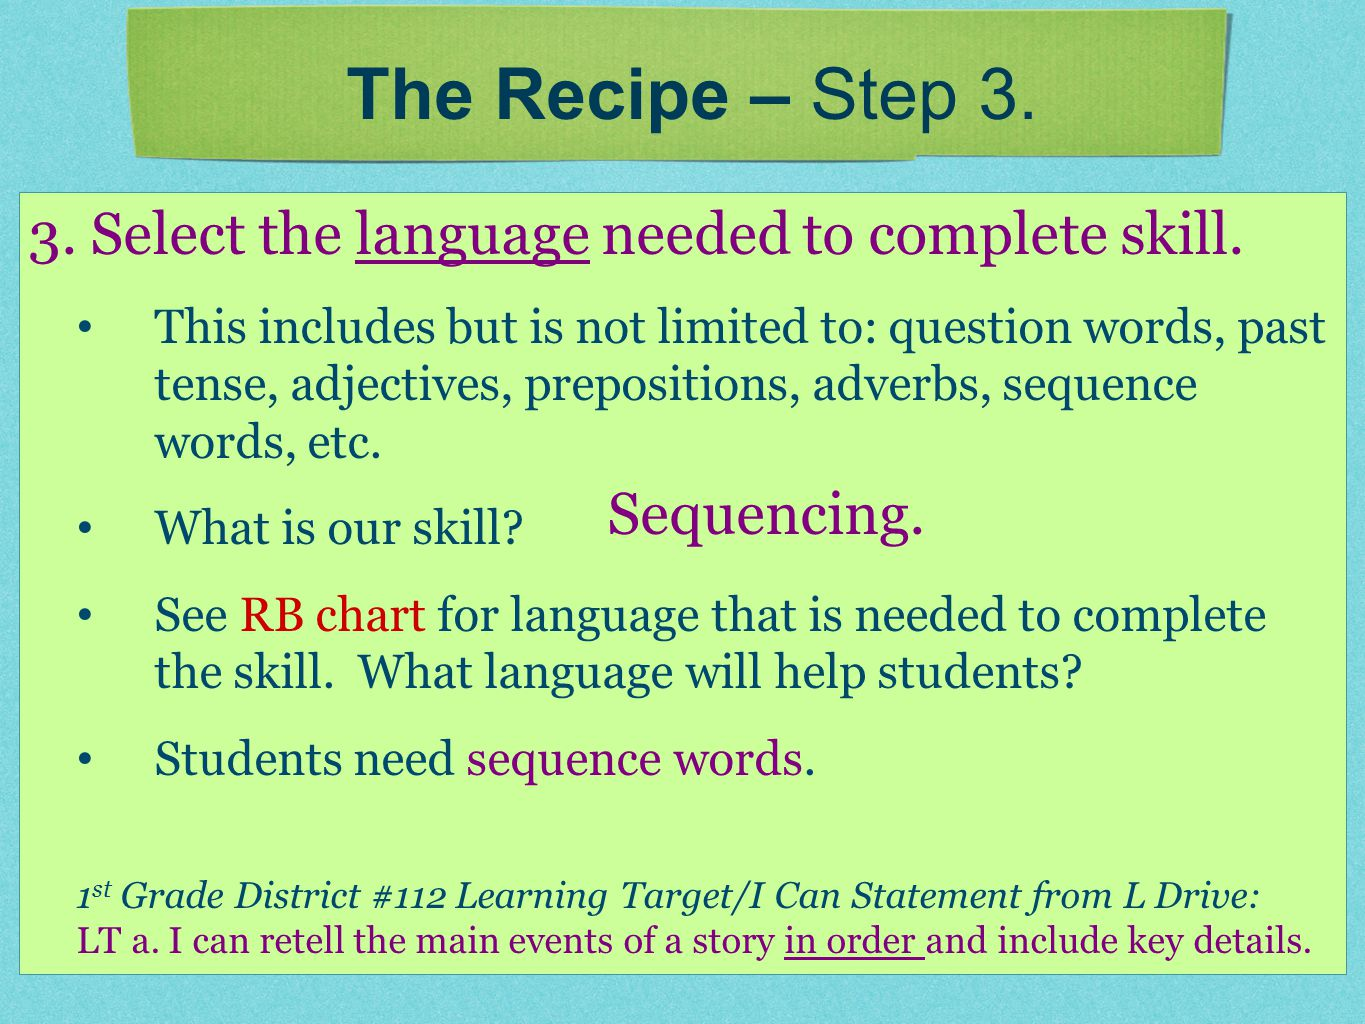 3. Select the language needed to complete skill. This includes but is not limited to: question words, past tense, adjectives, prepositions, adverbs, s